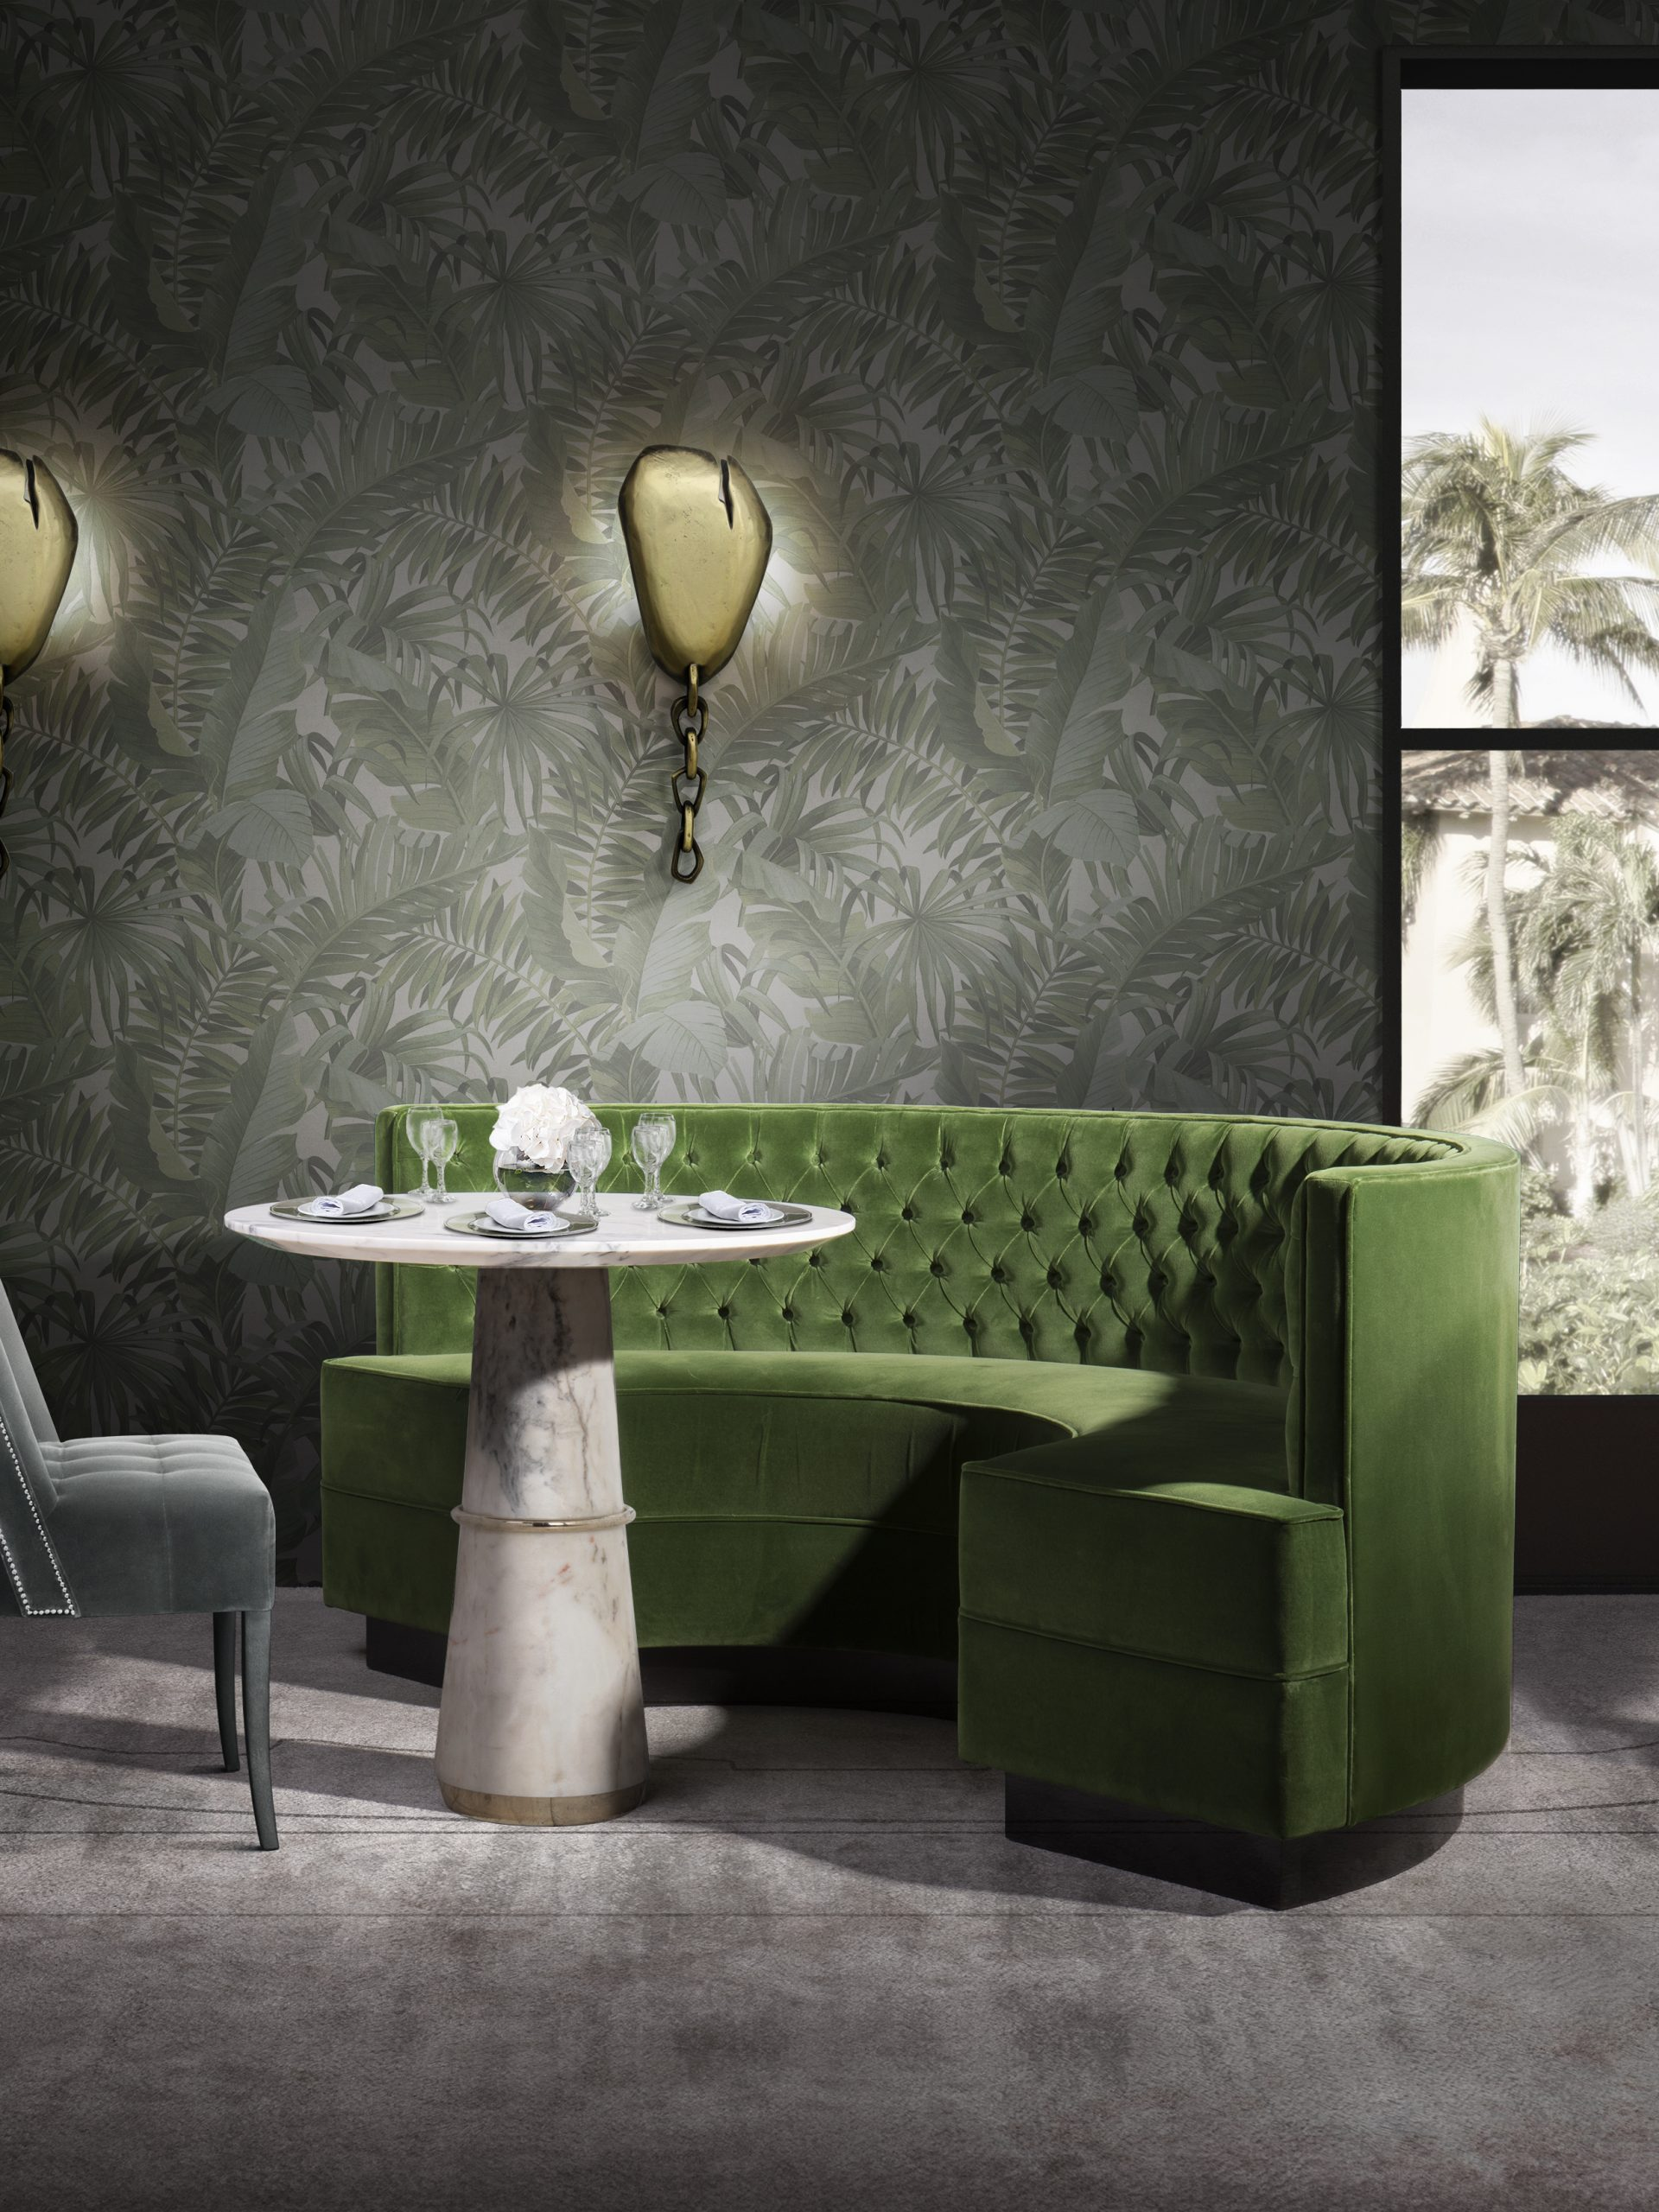 20 Stylish Dining Seating Options For Modern Hotels dining seating 20 Stylish Dining Seating Options For Modern Hotels 20 Stylish Dining Seating Options For Modern Hotels 1 scaled